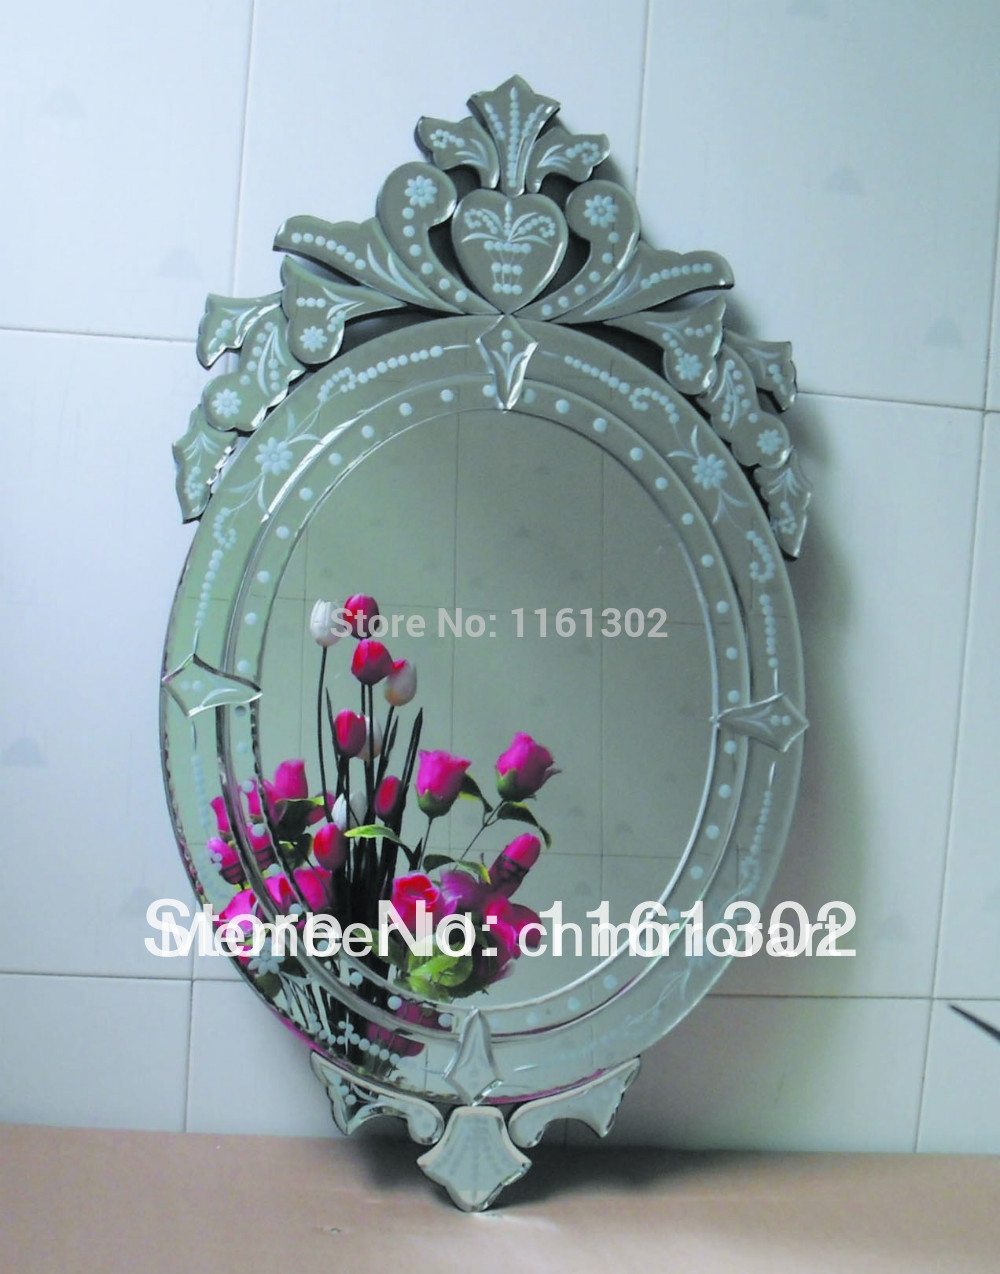 Oval Wall Mirror Promotion Shop For Promotional Oval Wall Mirror For Venetian Wall Mirror (Image 6 of 15)